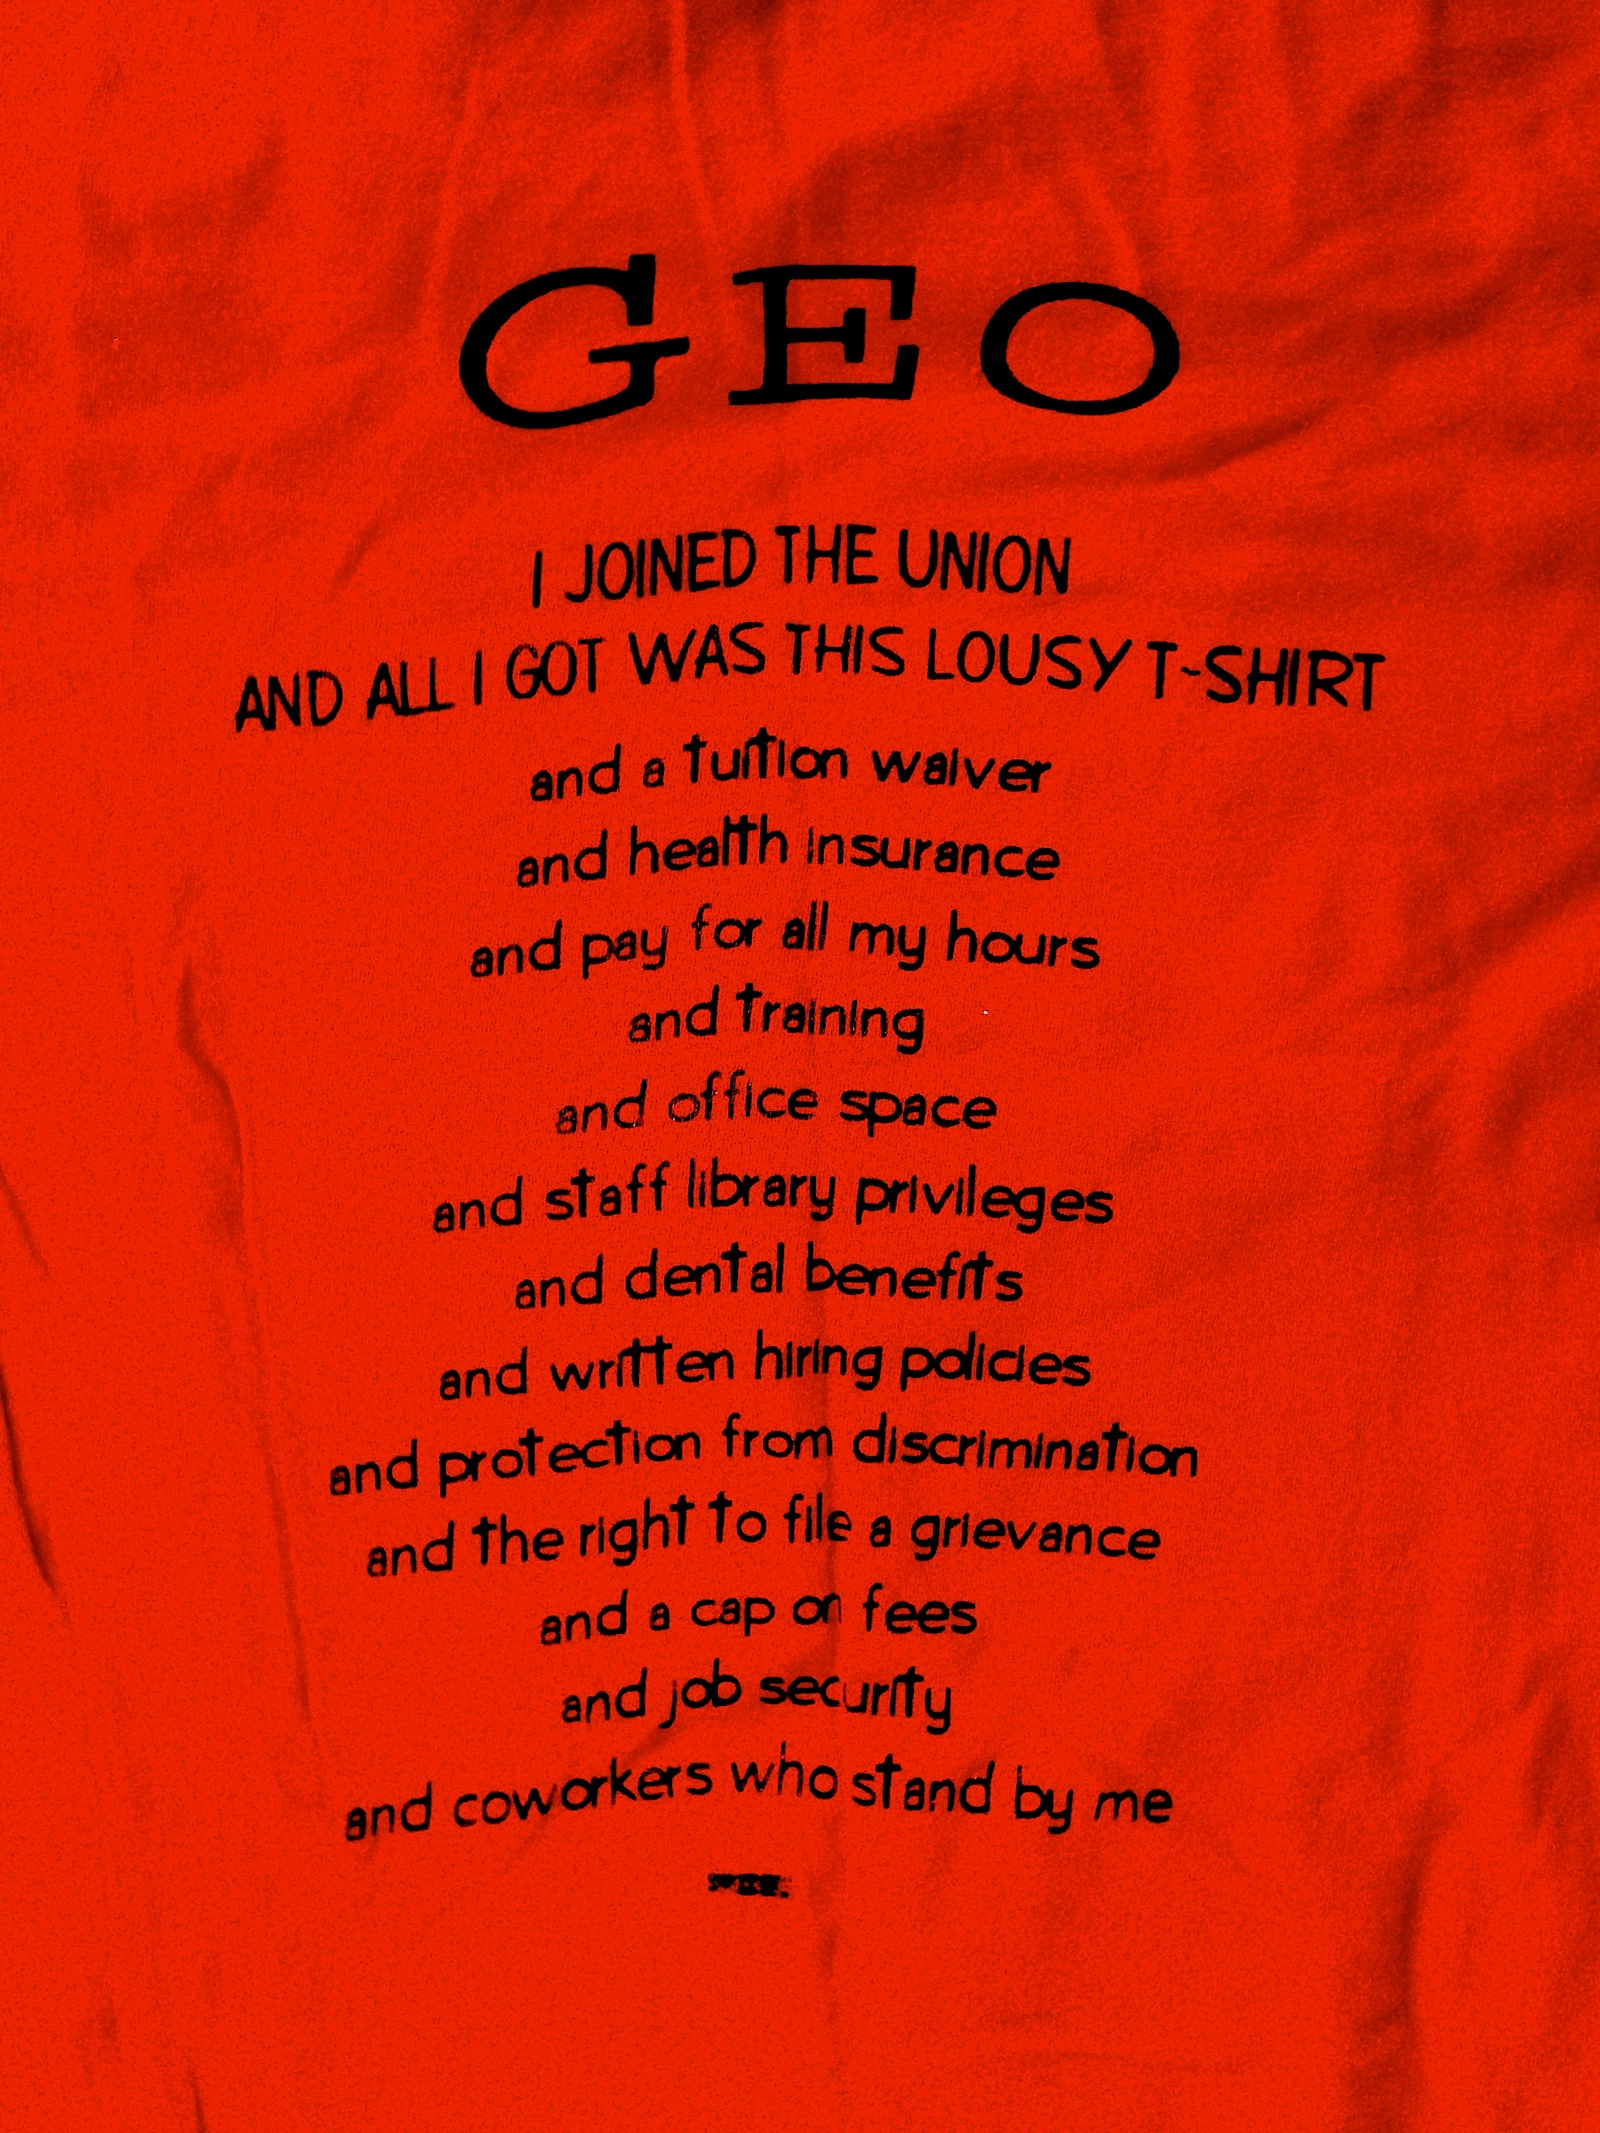 My GEO Union Tee Shirt - A classic of the Good Old Days